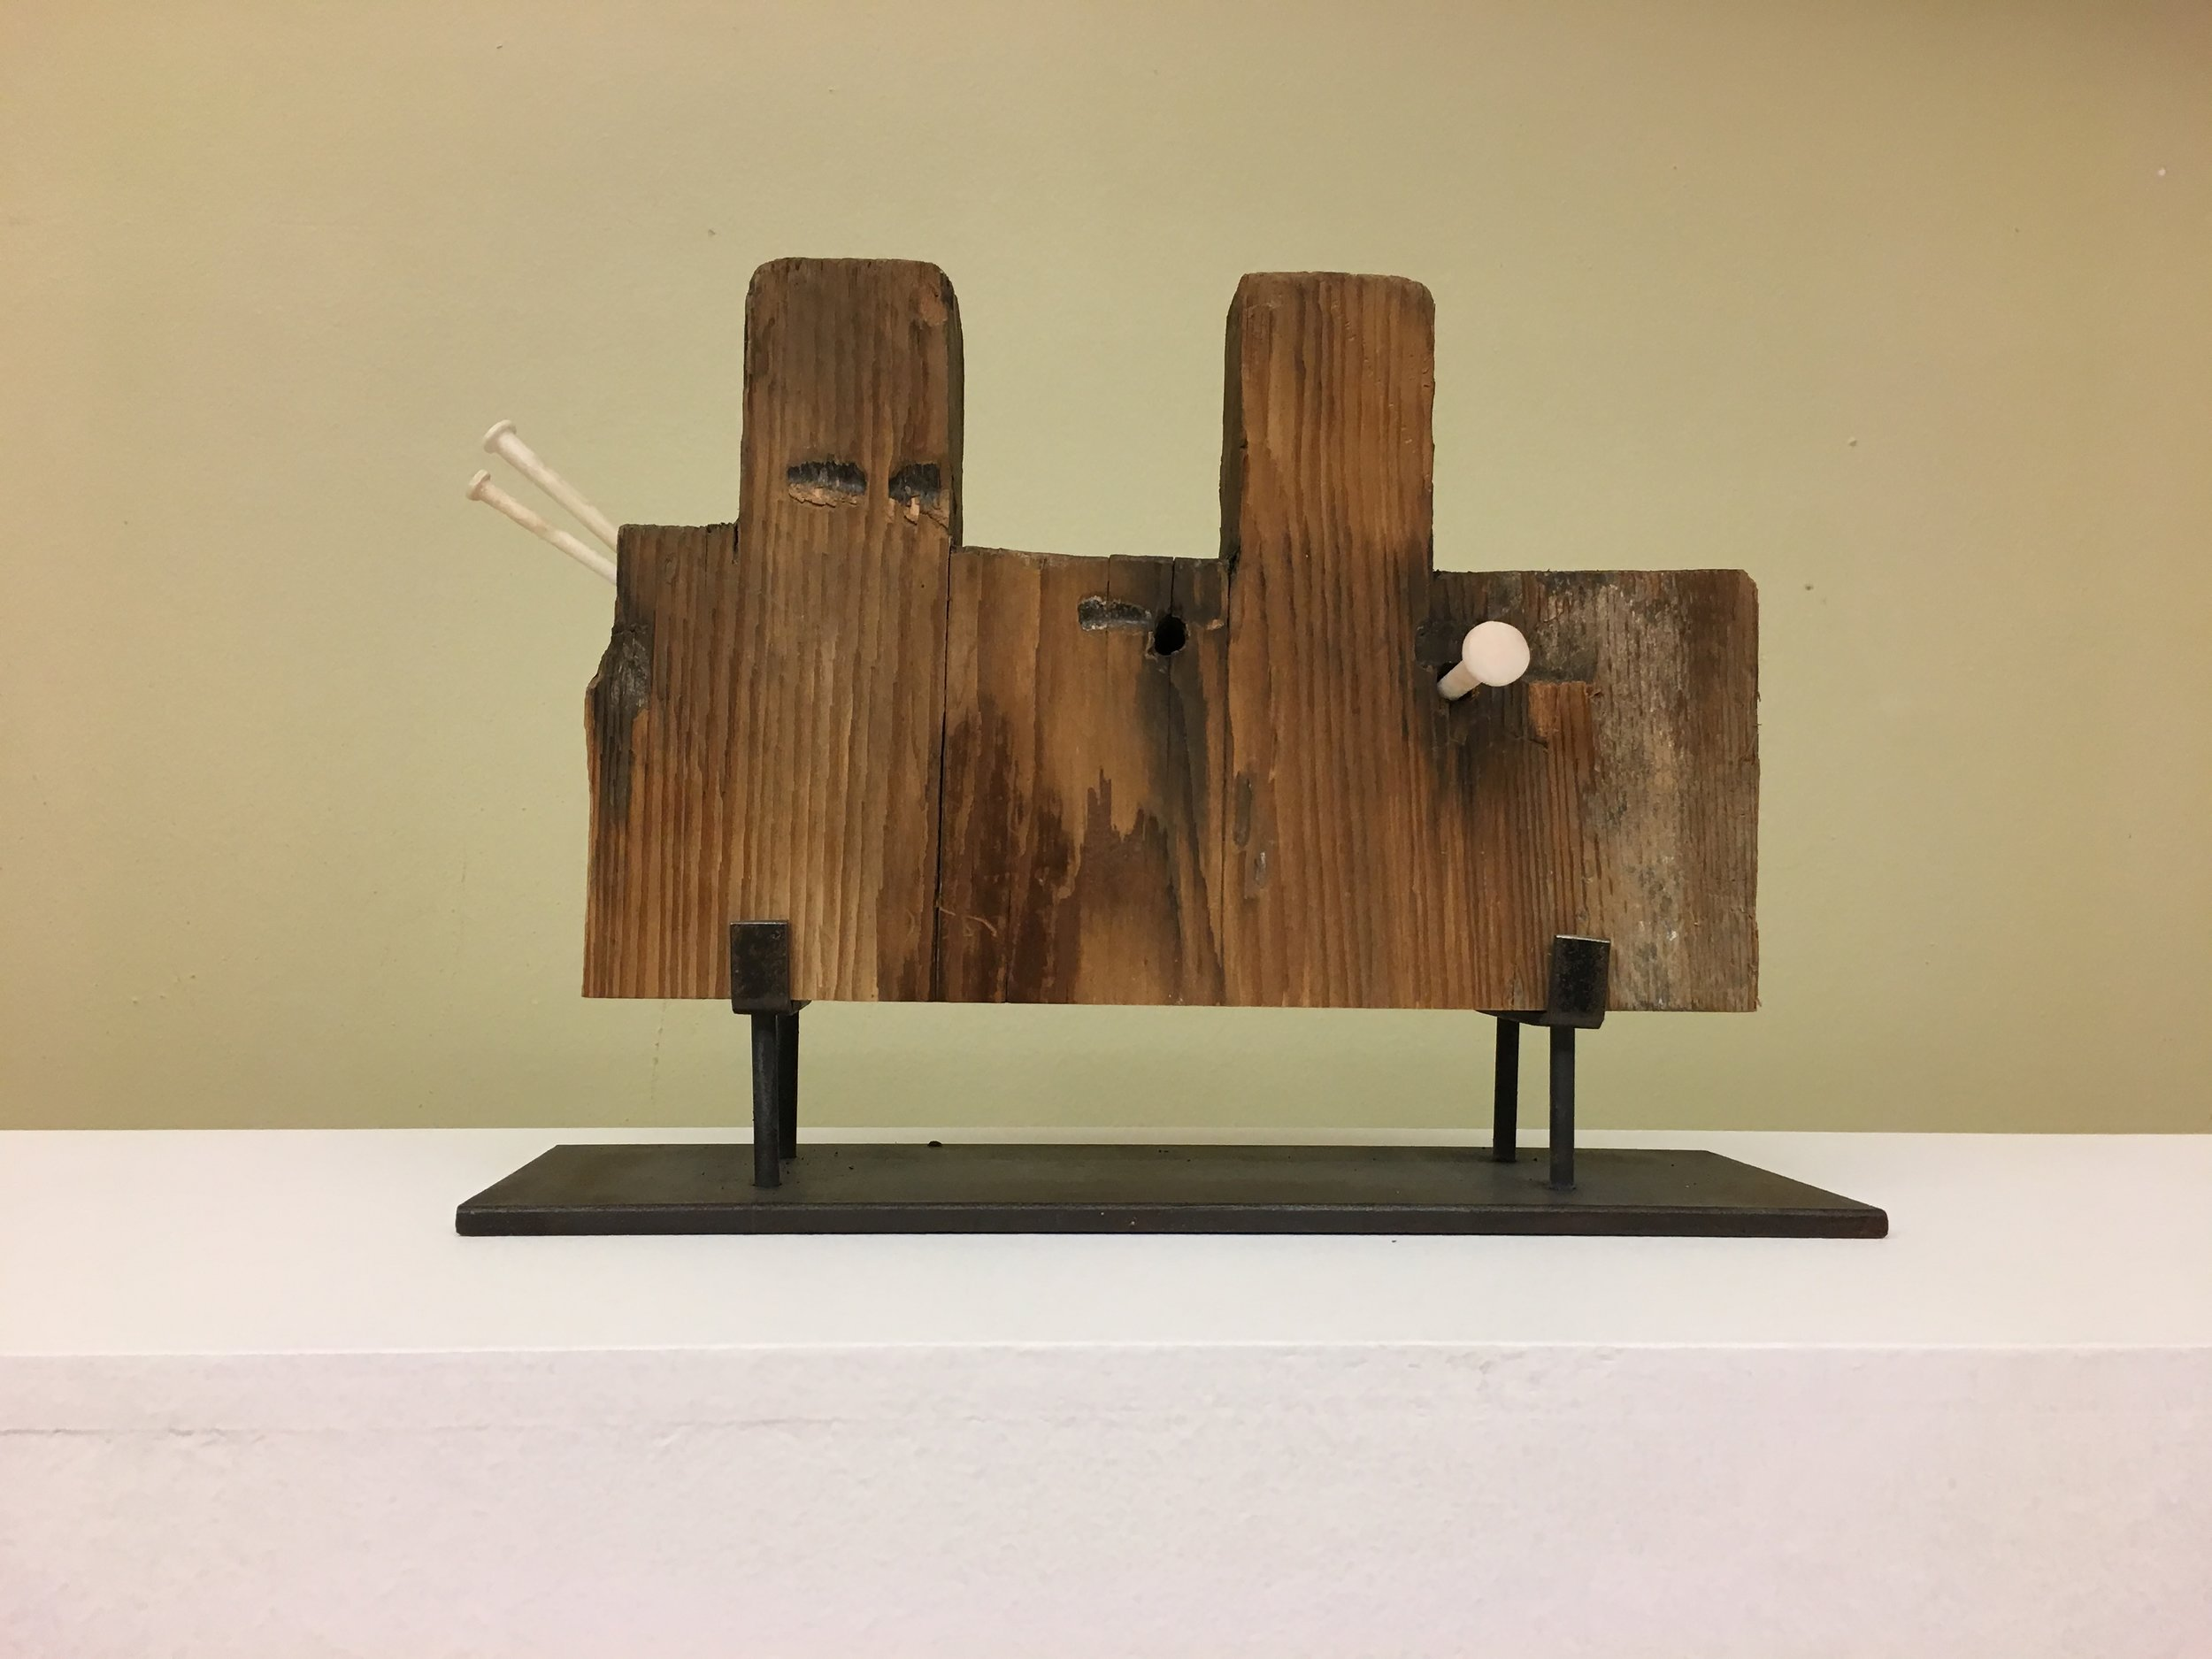 Lusk  GREELY MYATT _Notched_ 2019; alabaster, found wood, steel; 8x16x4_ copy.jpg